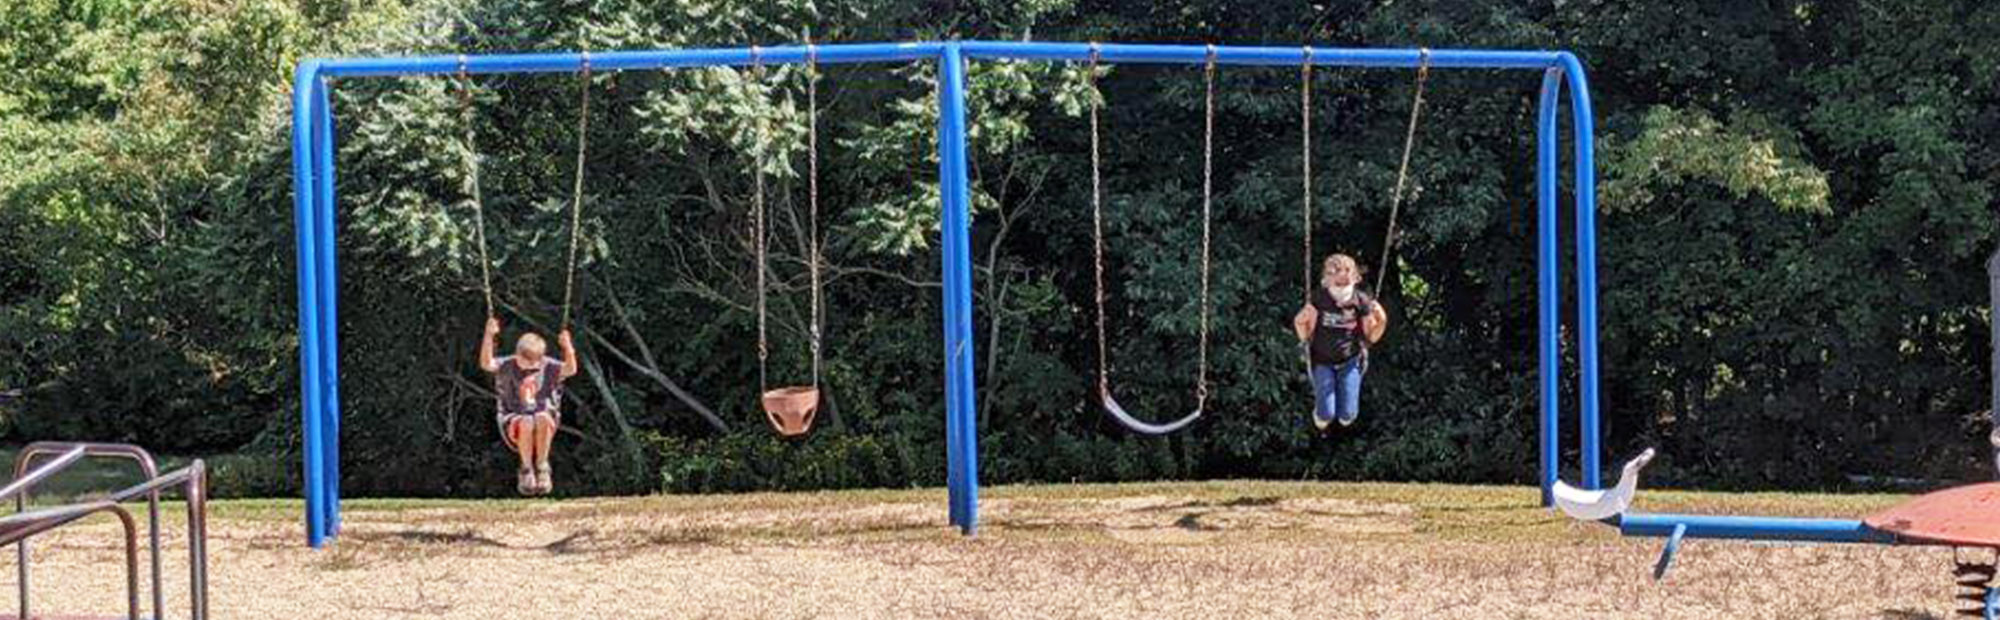 Students enjoying the swings on the school playground